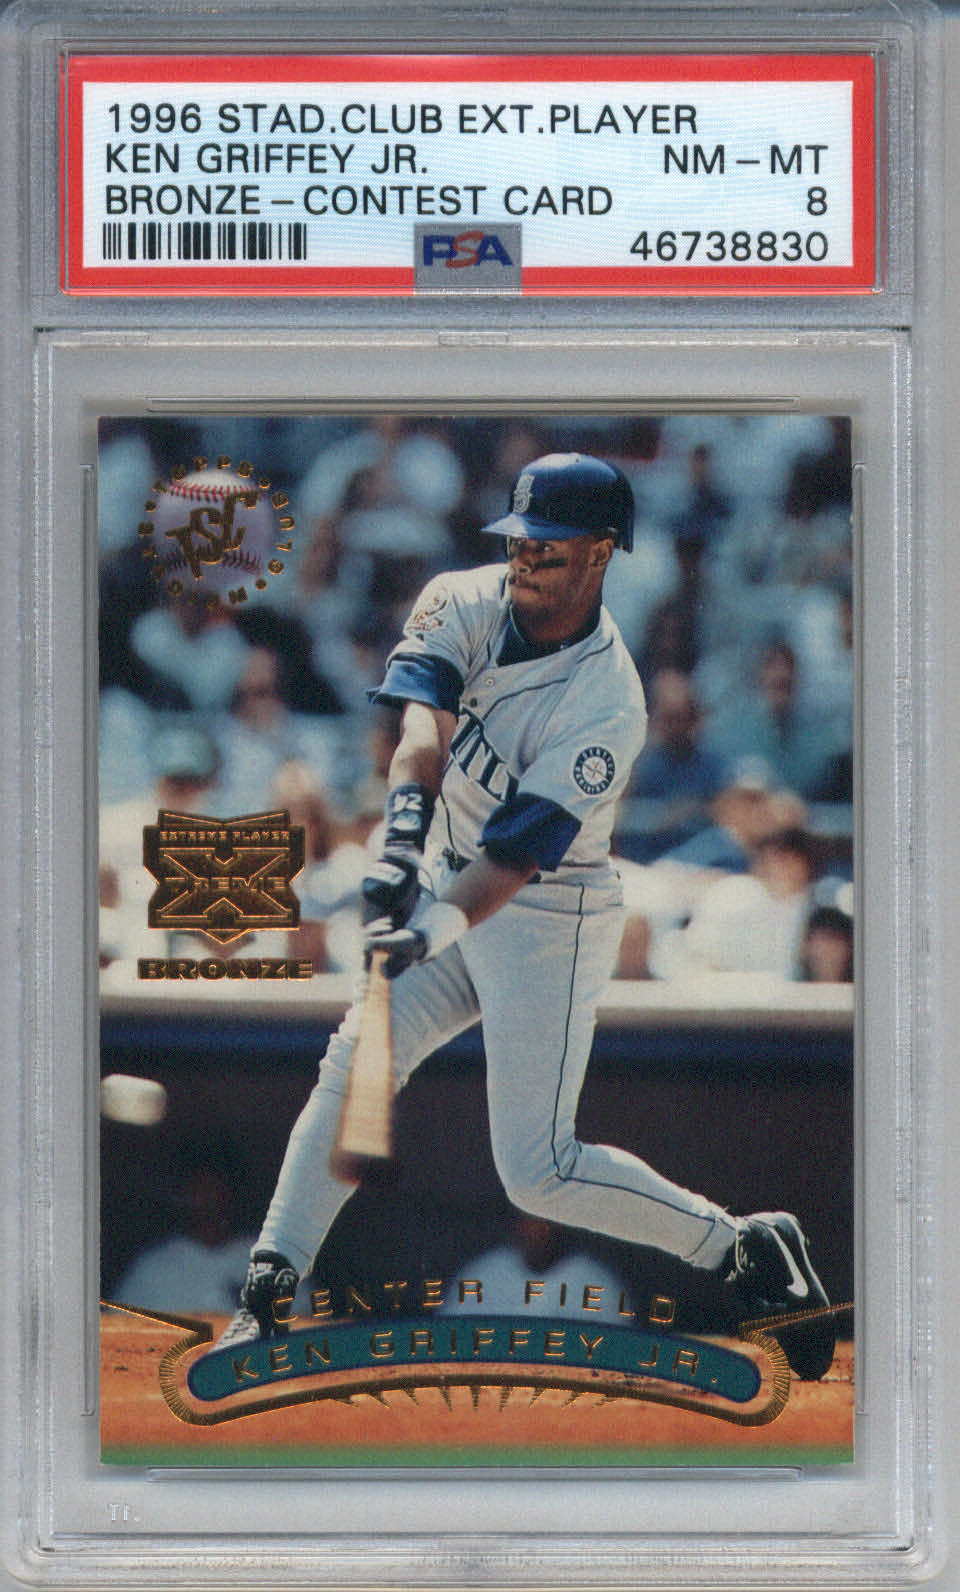 1996 Stadium Club Extreme Player Bronze Contest Card Ken Griffey Jr. PSA 8